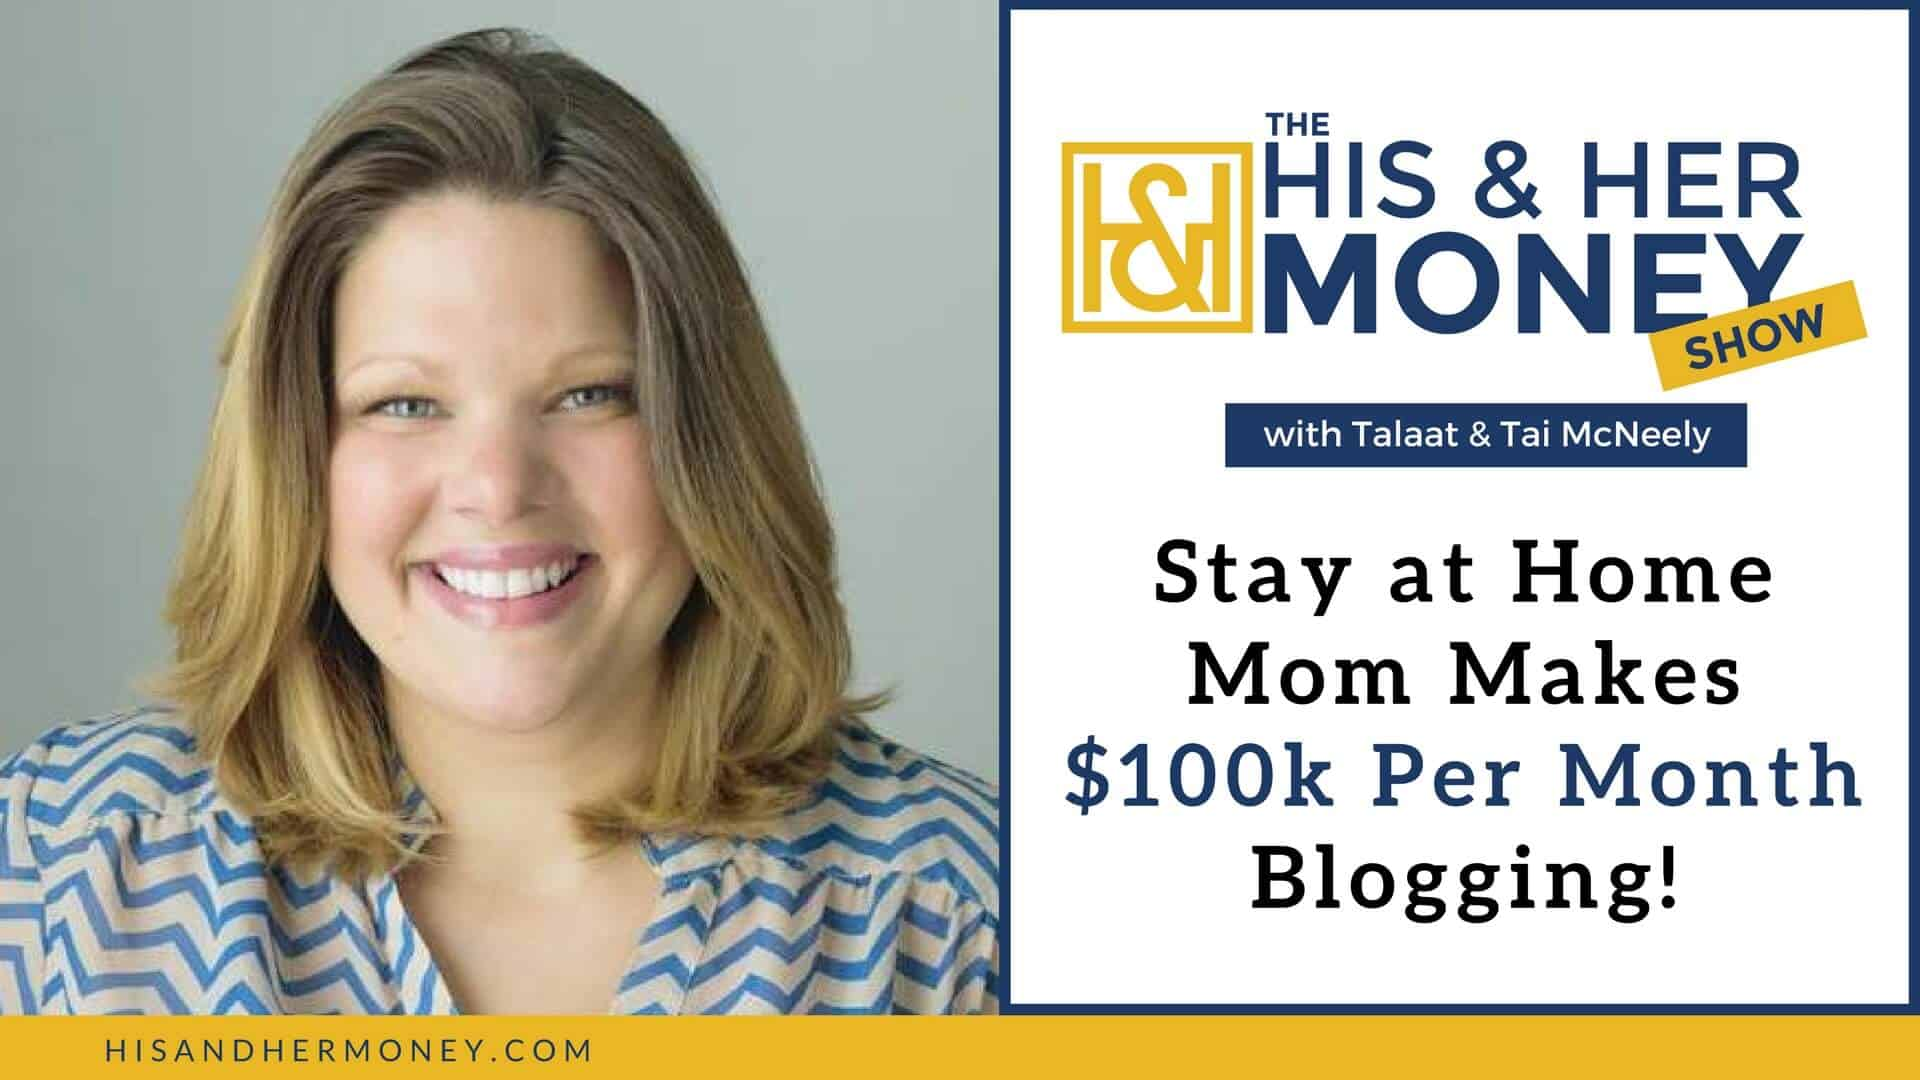 Stay at Home Mom Makes $100,000 a Month Blogging! | His